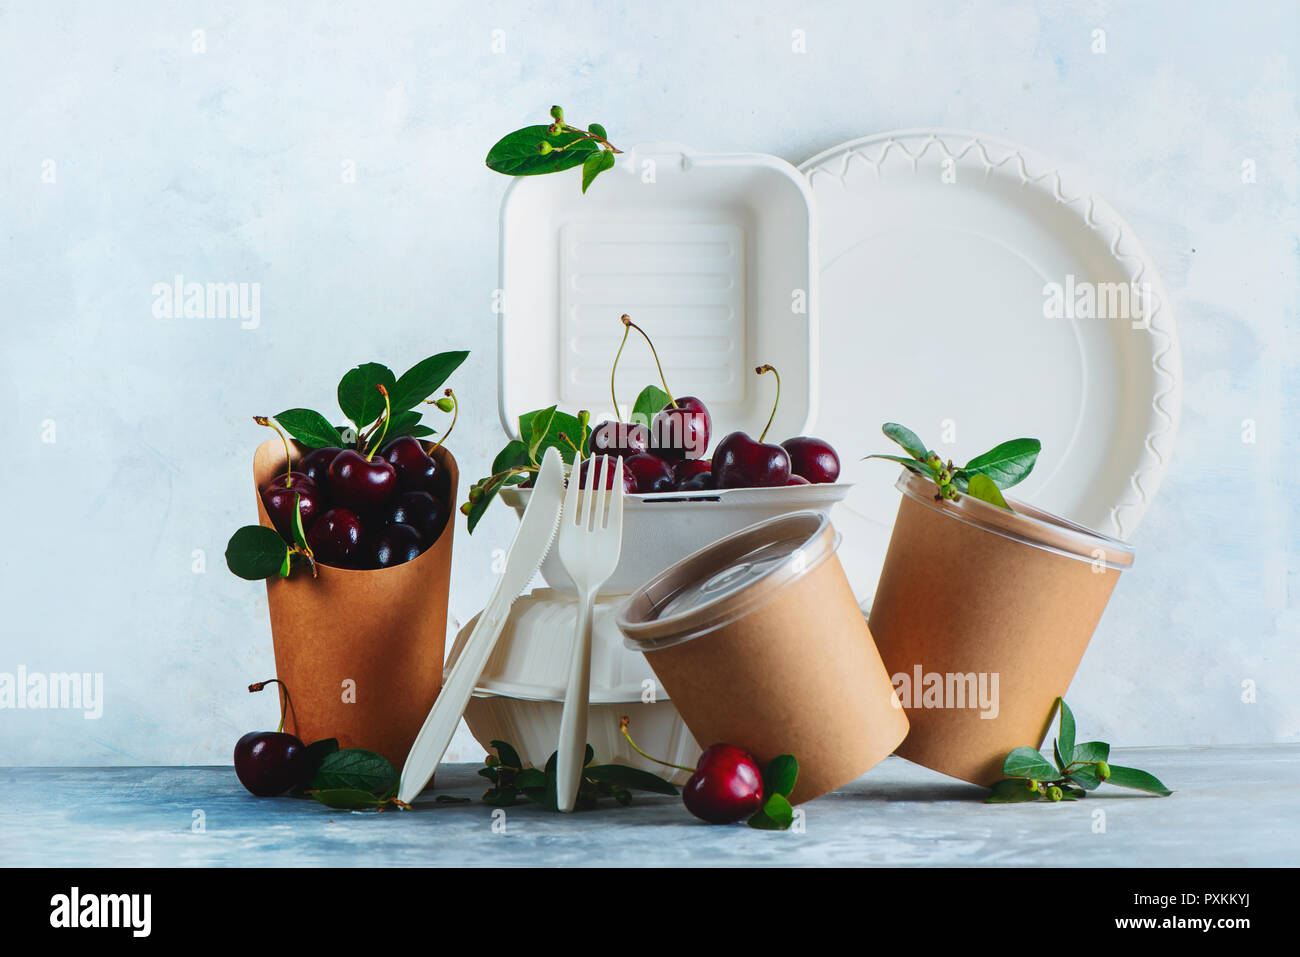 Catering disposables, cups, plates and containers with cherries. Eco-friendly food packaging on a neutral gray background with copy space. Preserving  - Stock Image